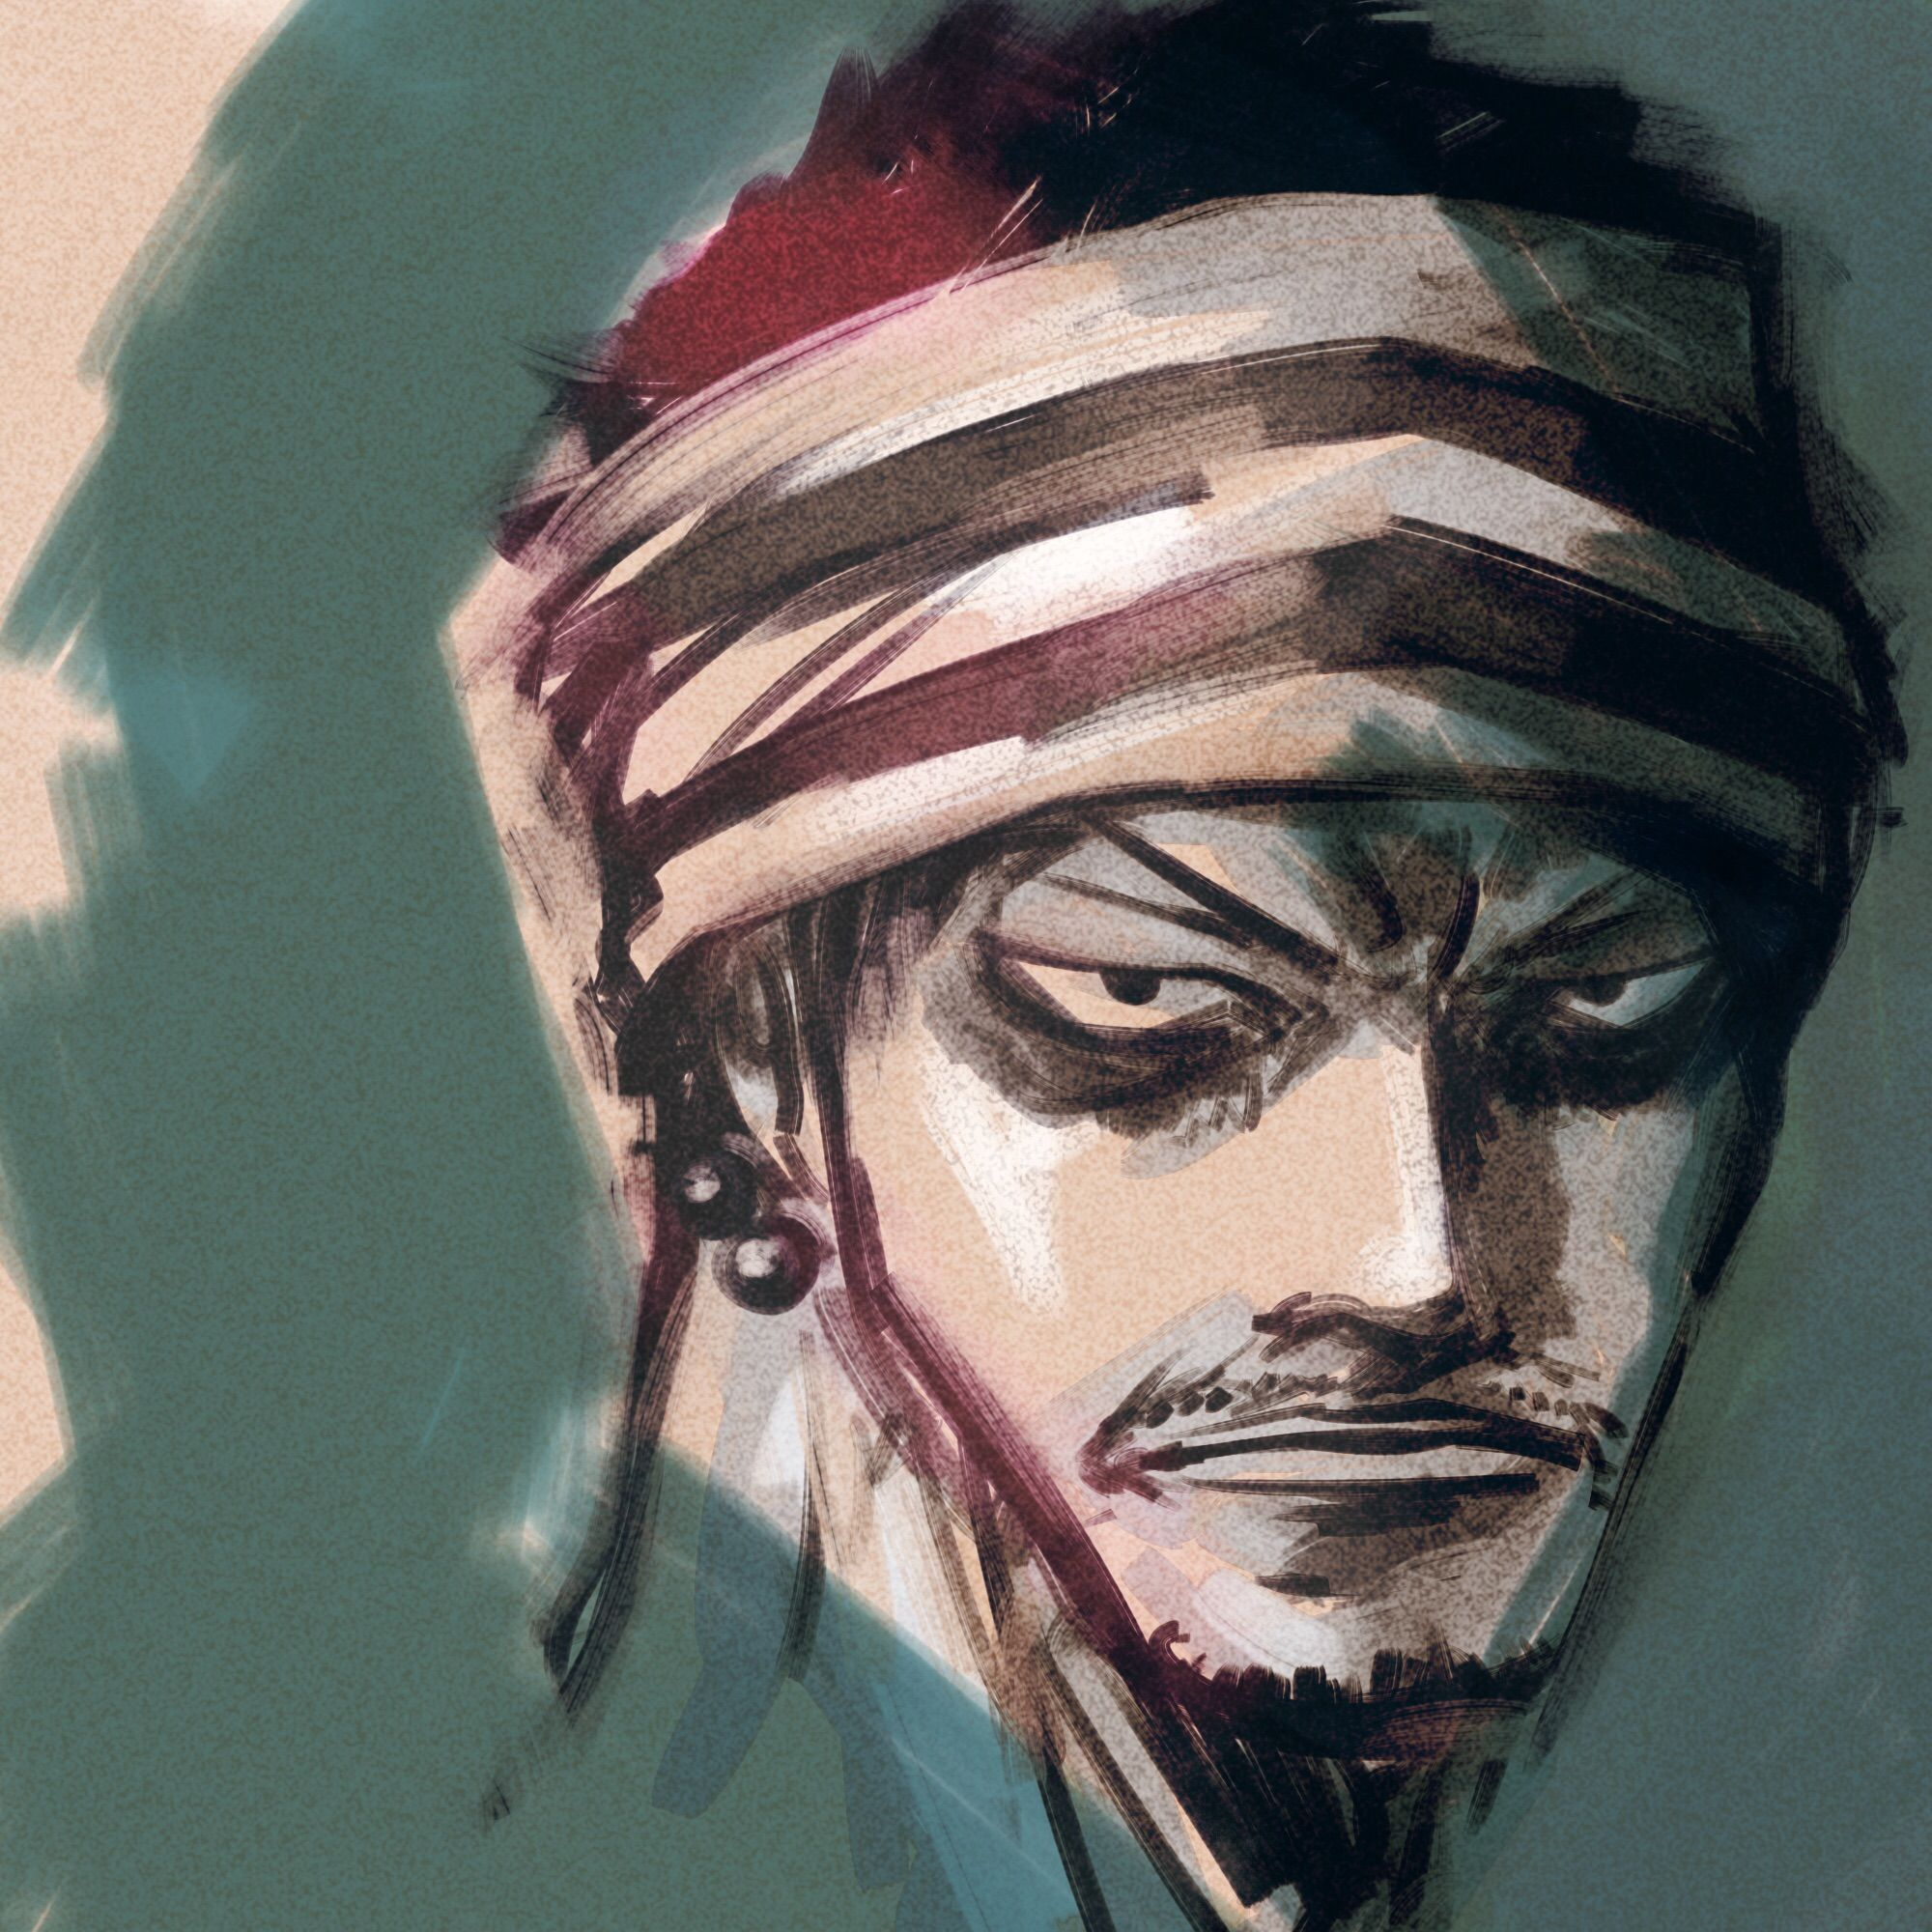 Gin (ONE PIECE)/#1942902 | One piece images, Anime images ...